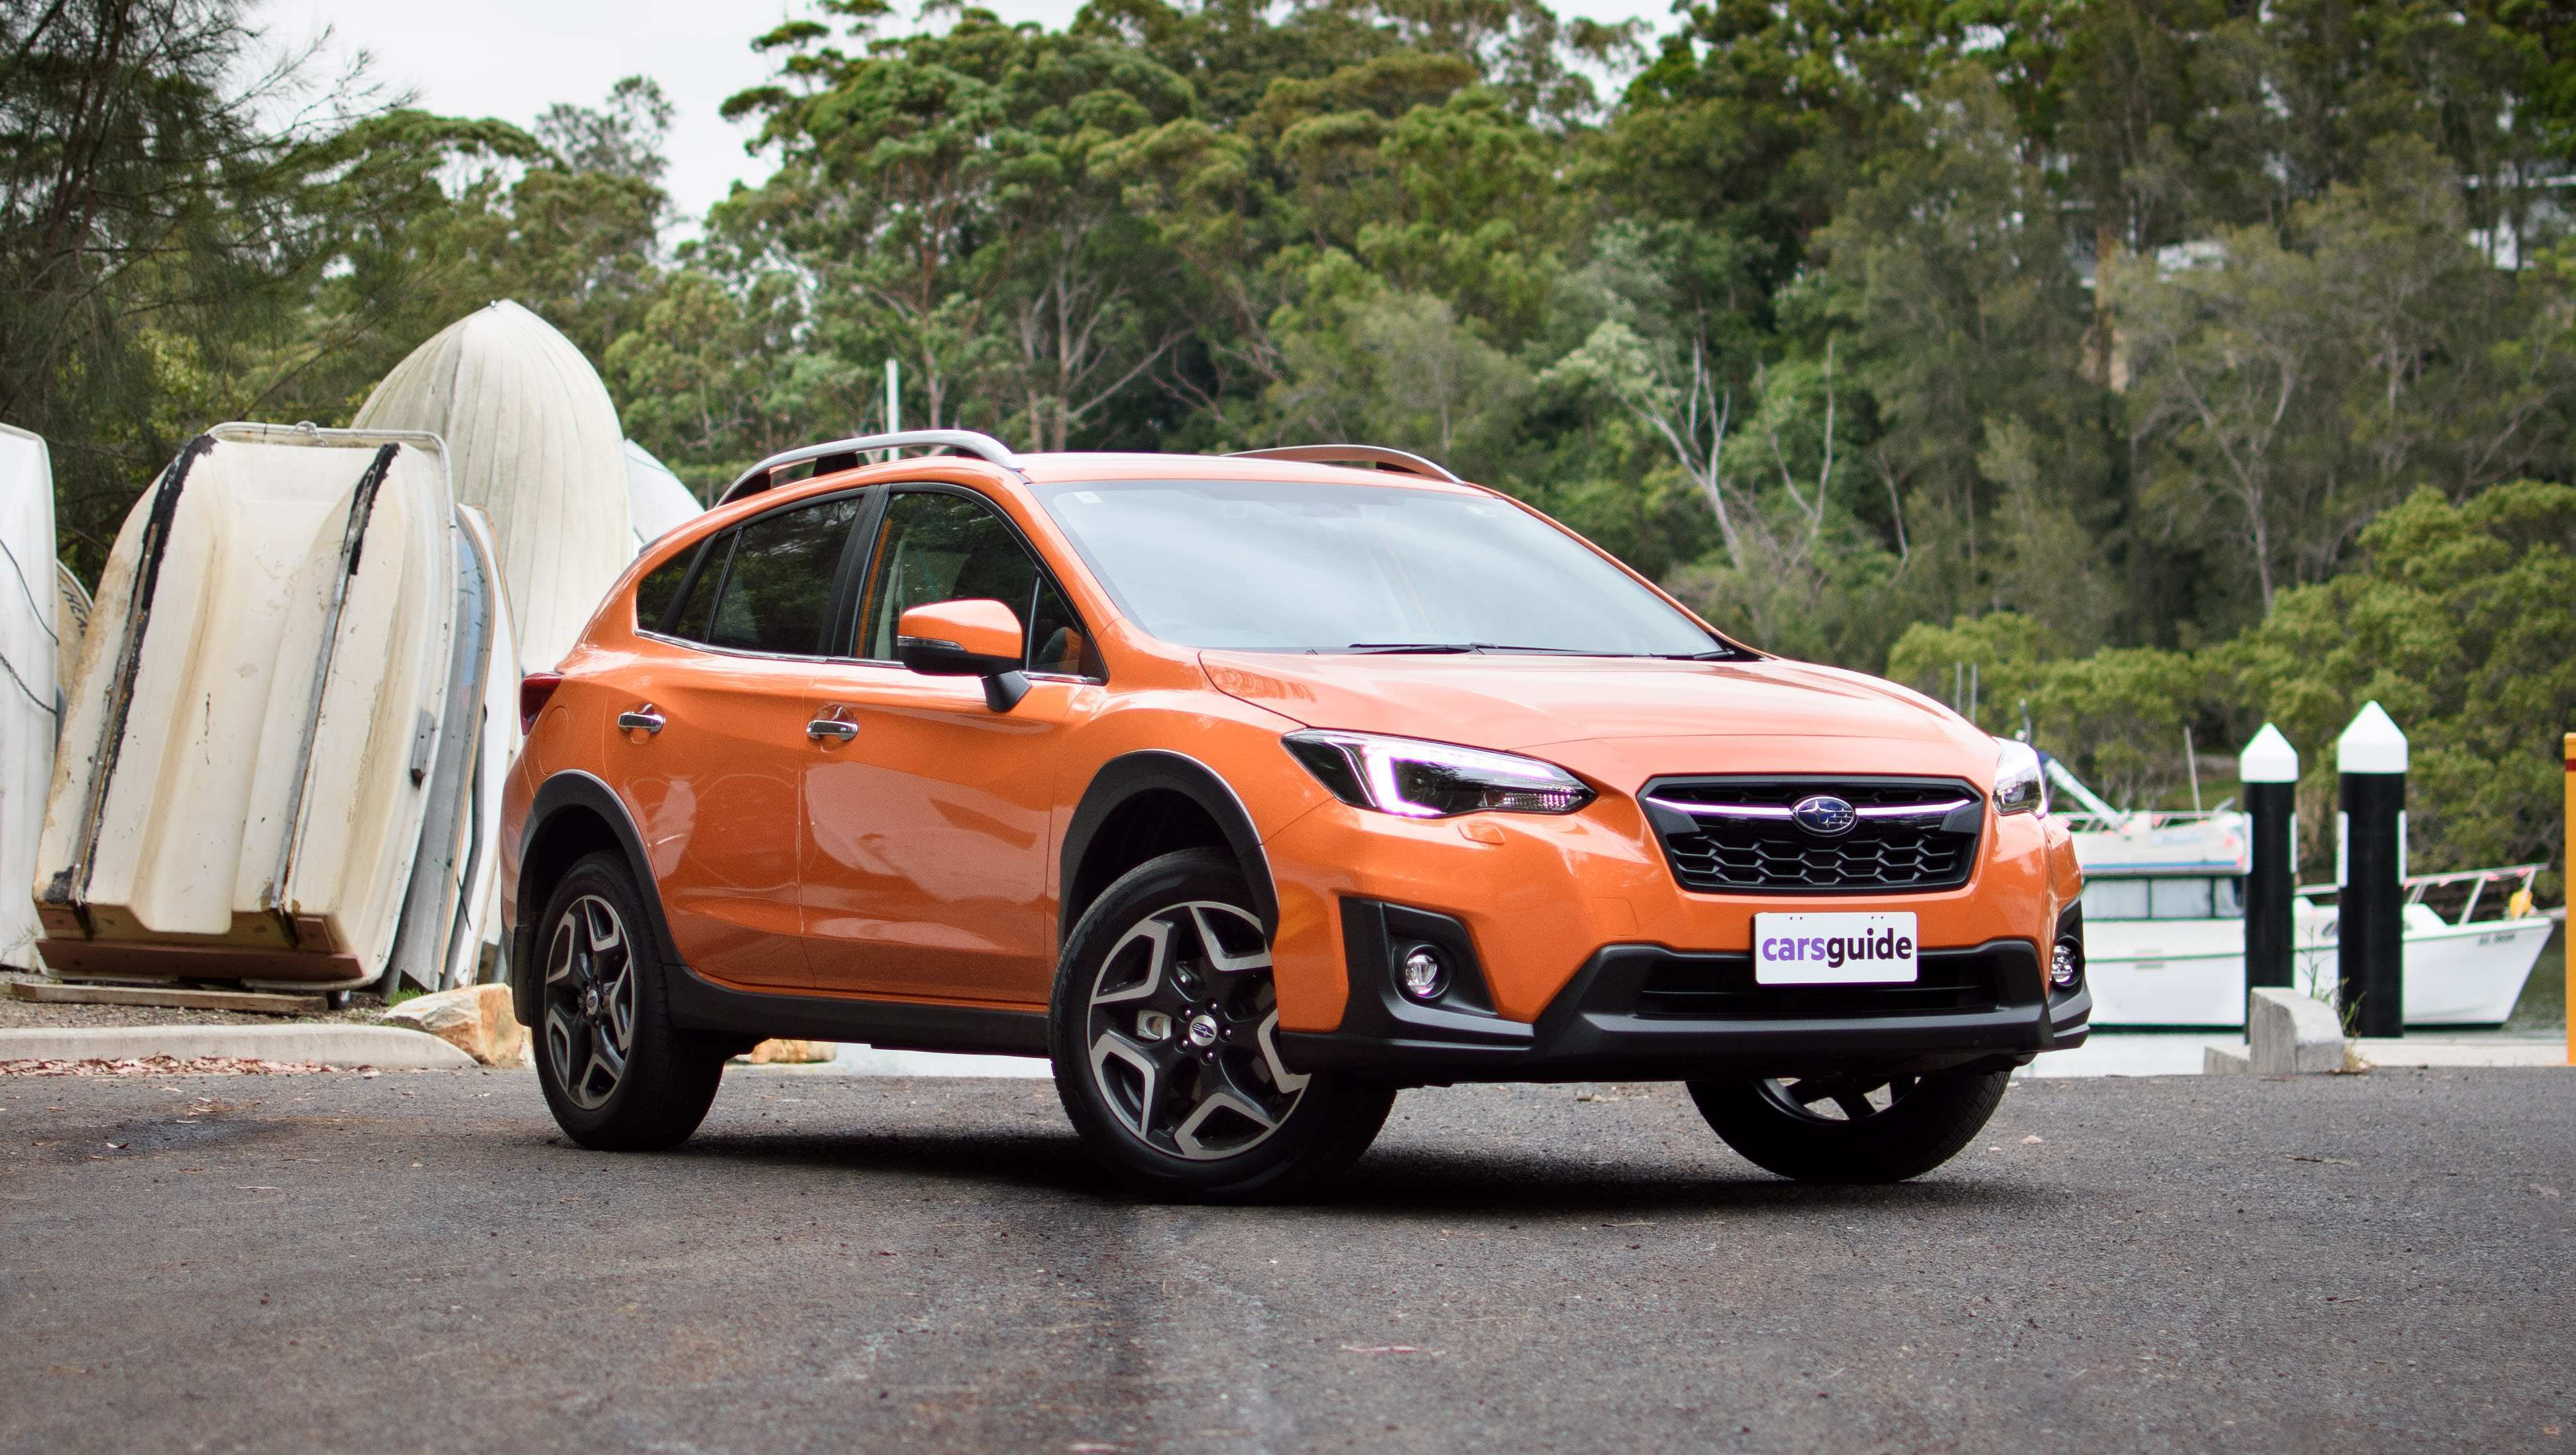 22 All New Subaru Xv 2019 Pictures by Subaru Xv 2019